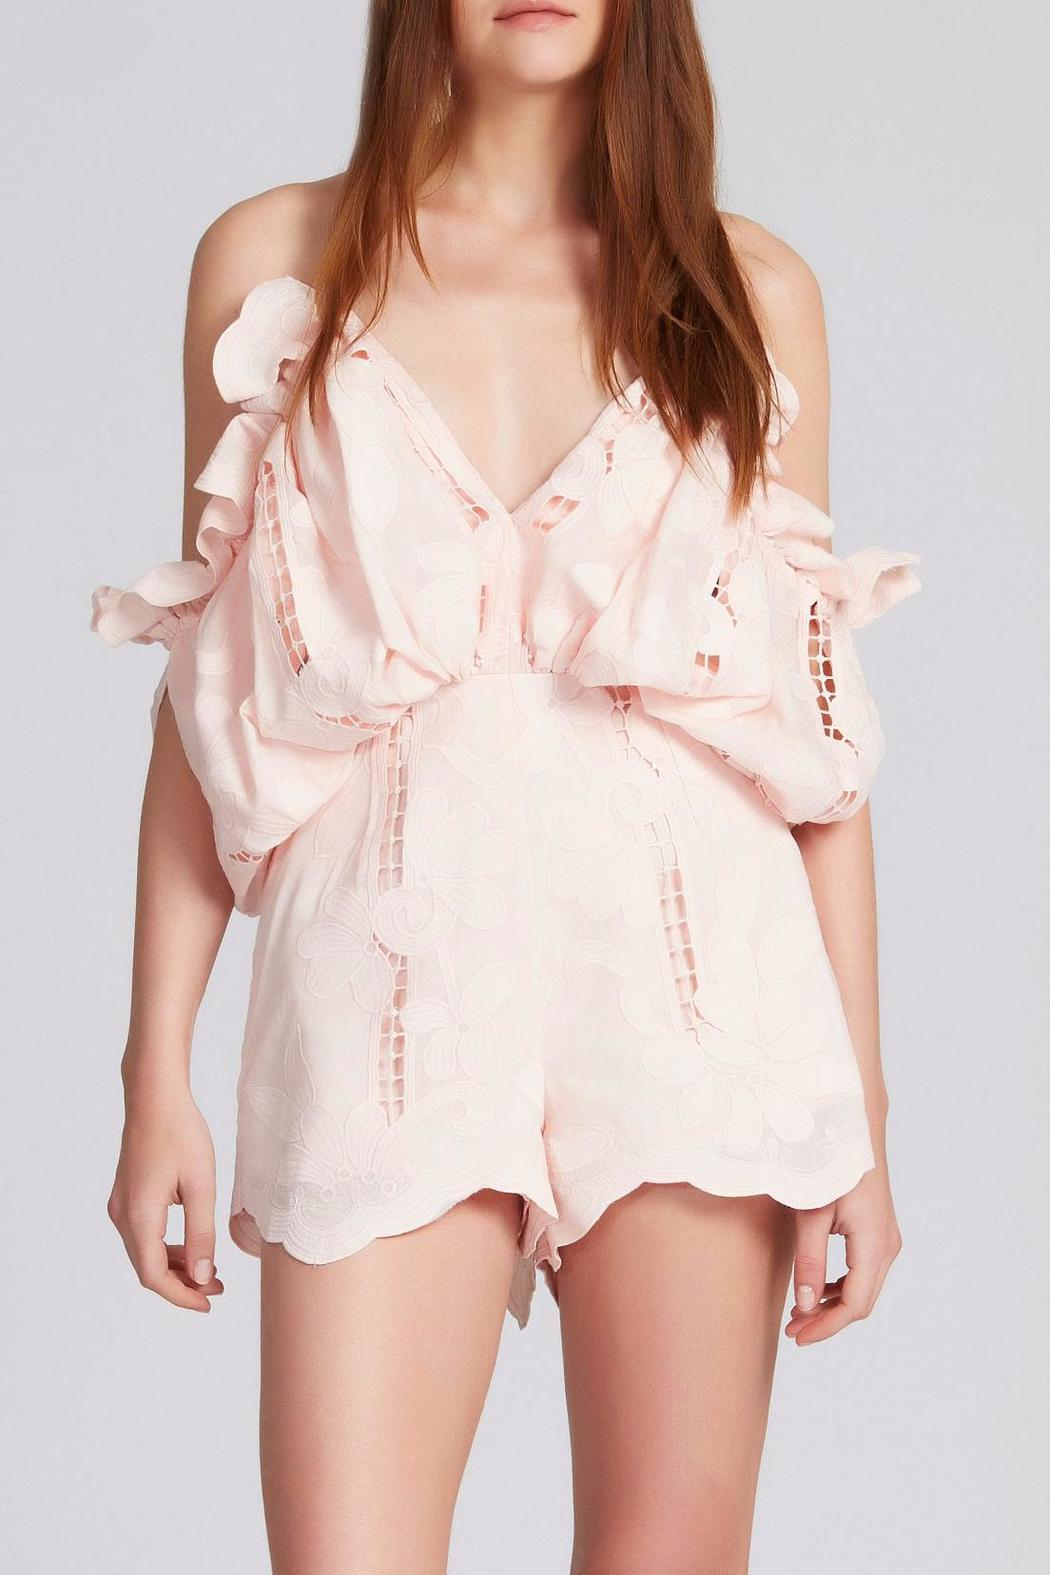 d3b406e8c29 Alice McCall Shake Off Playsuit from Queensland by Soho Girl ...